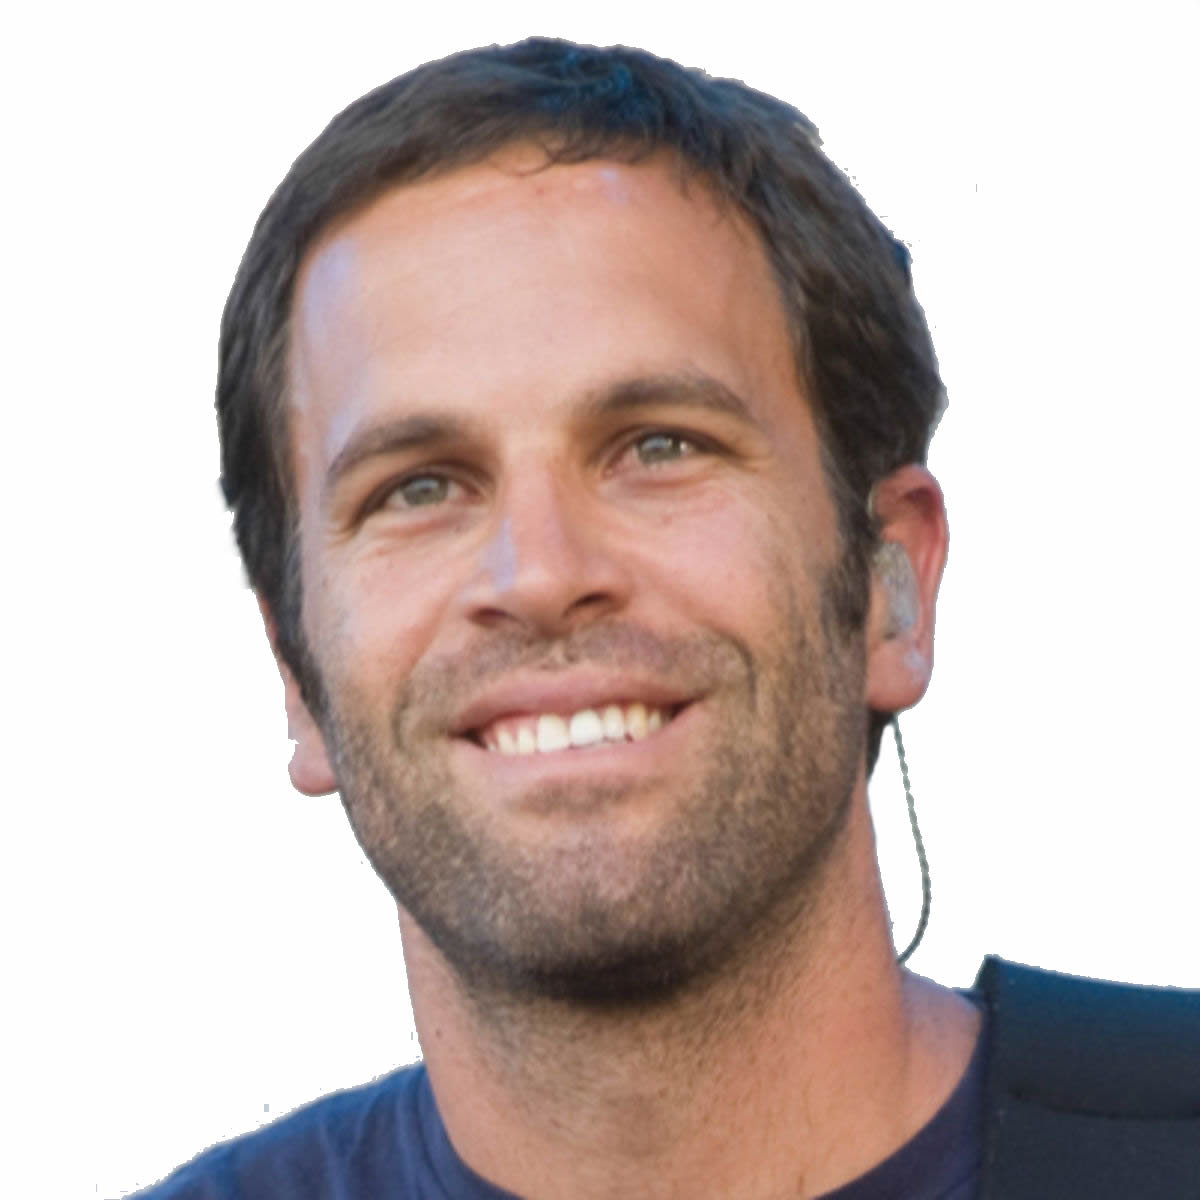 Singer Jack Johnson - age: 45